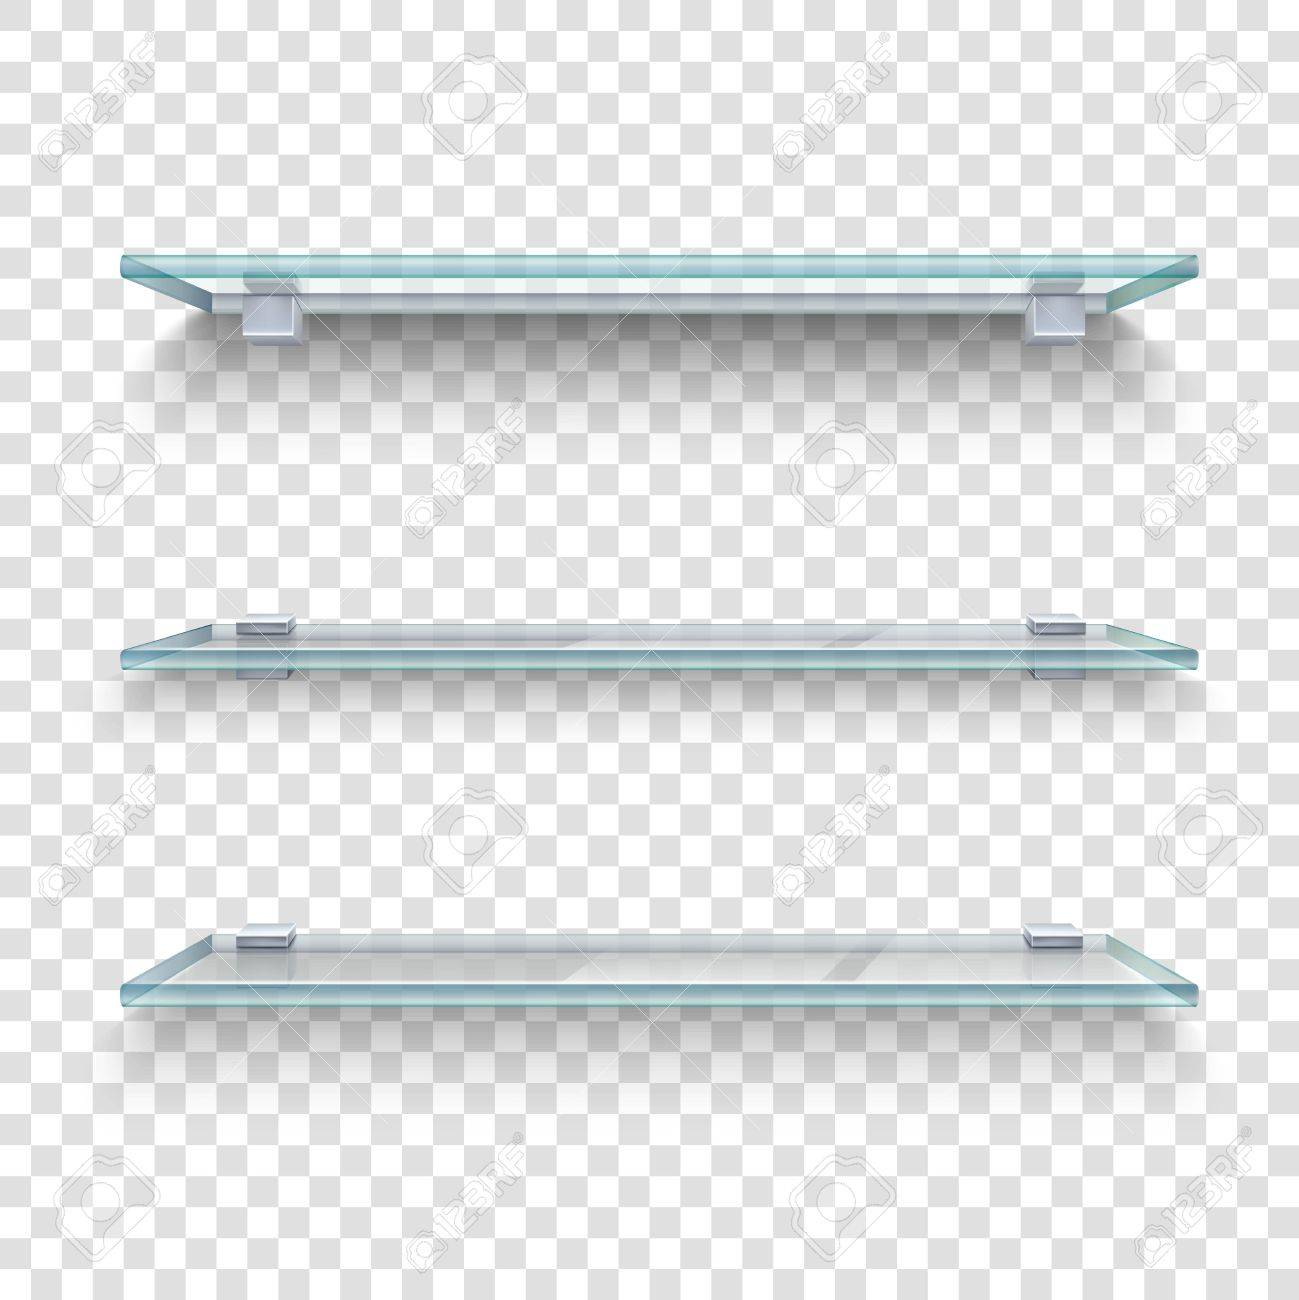 Three alike glass shelves on transparent grey and white plaid background realistic vector illustration - 56988930